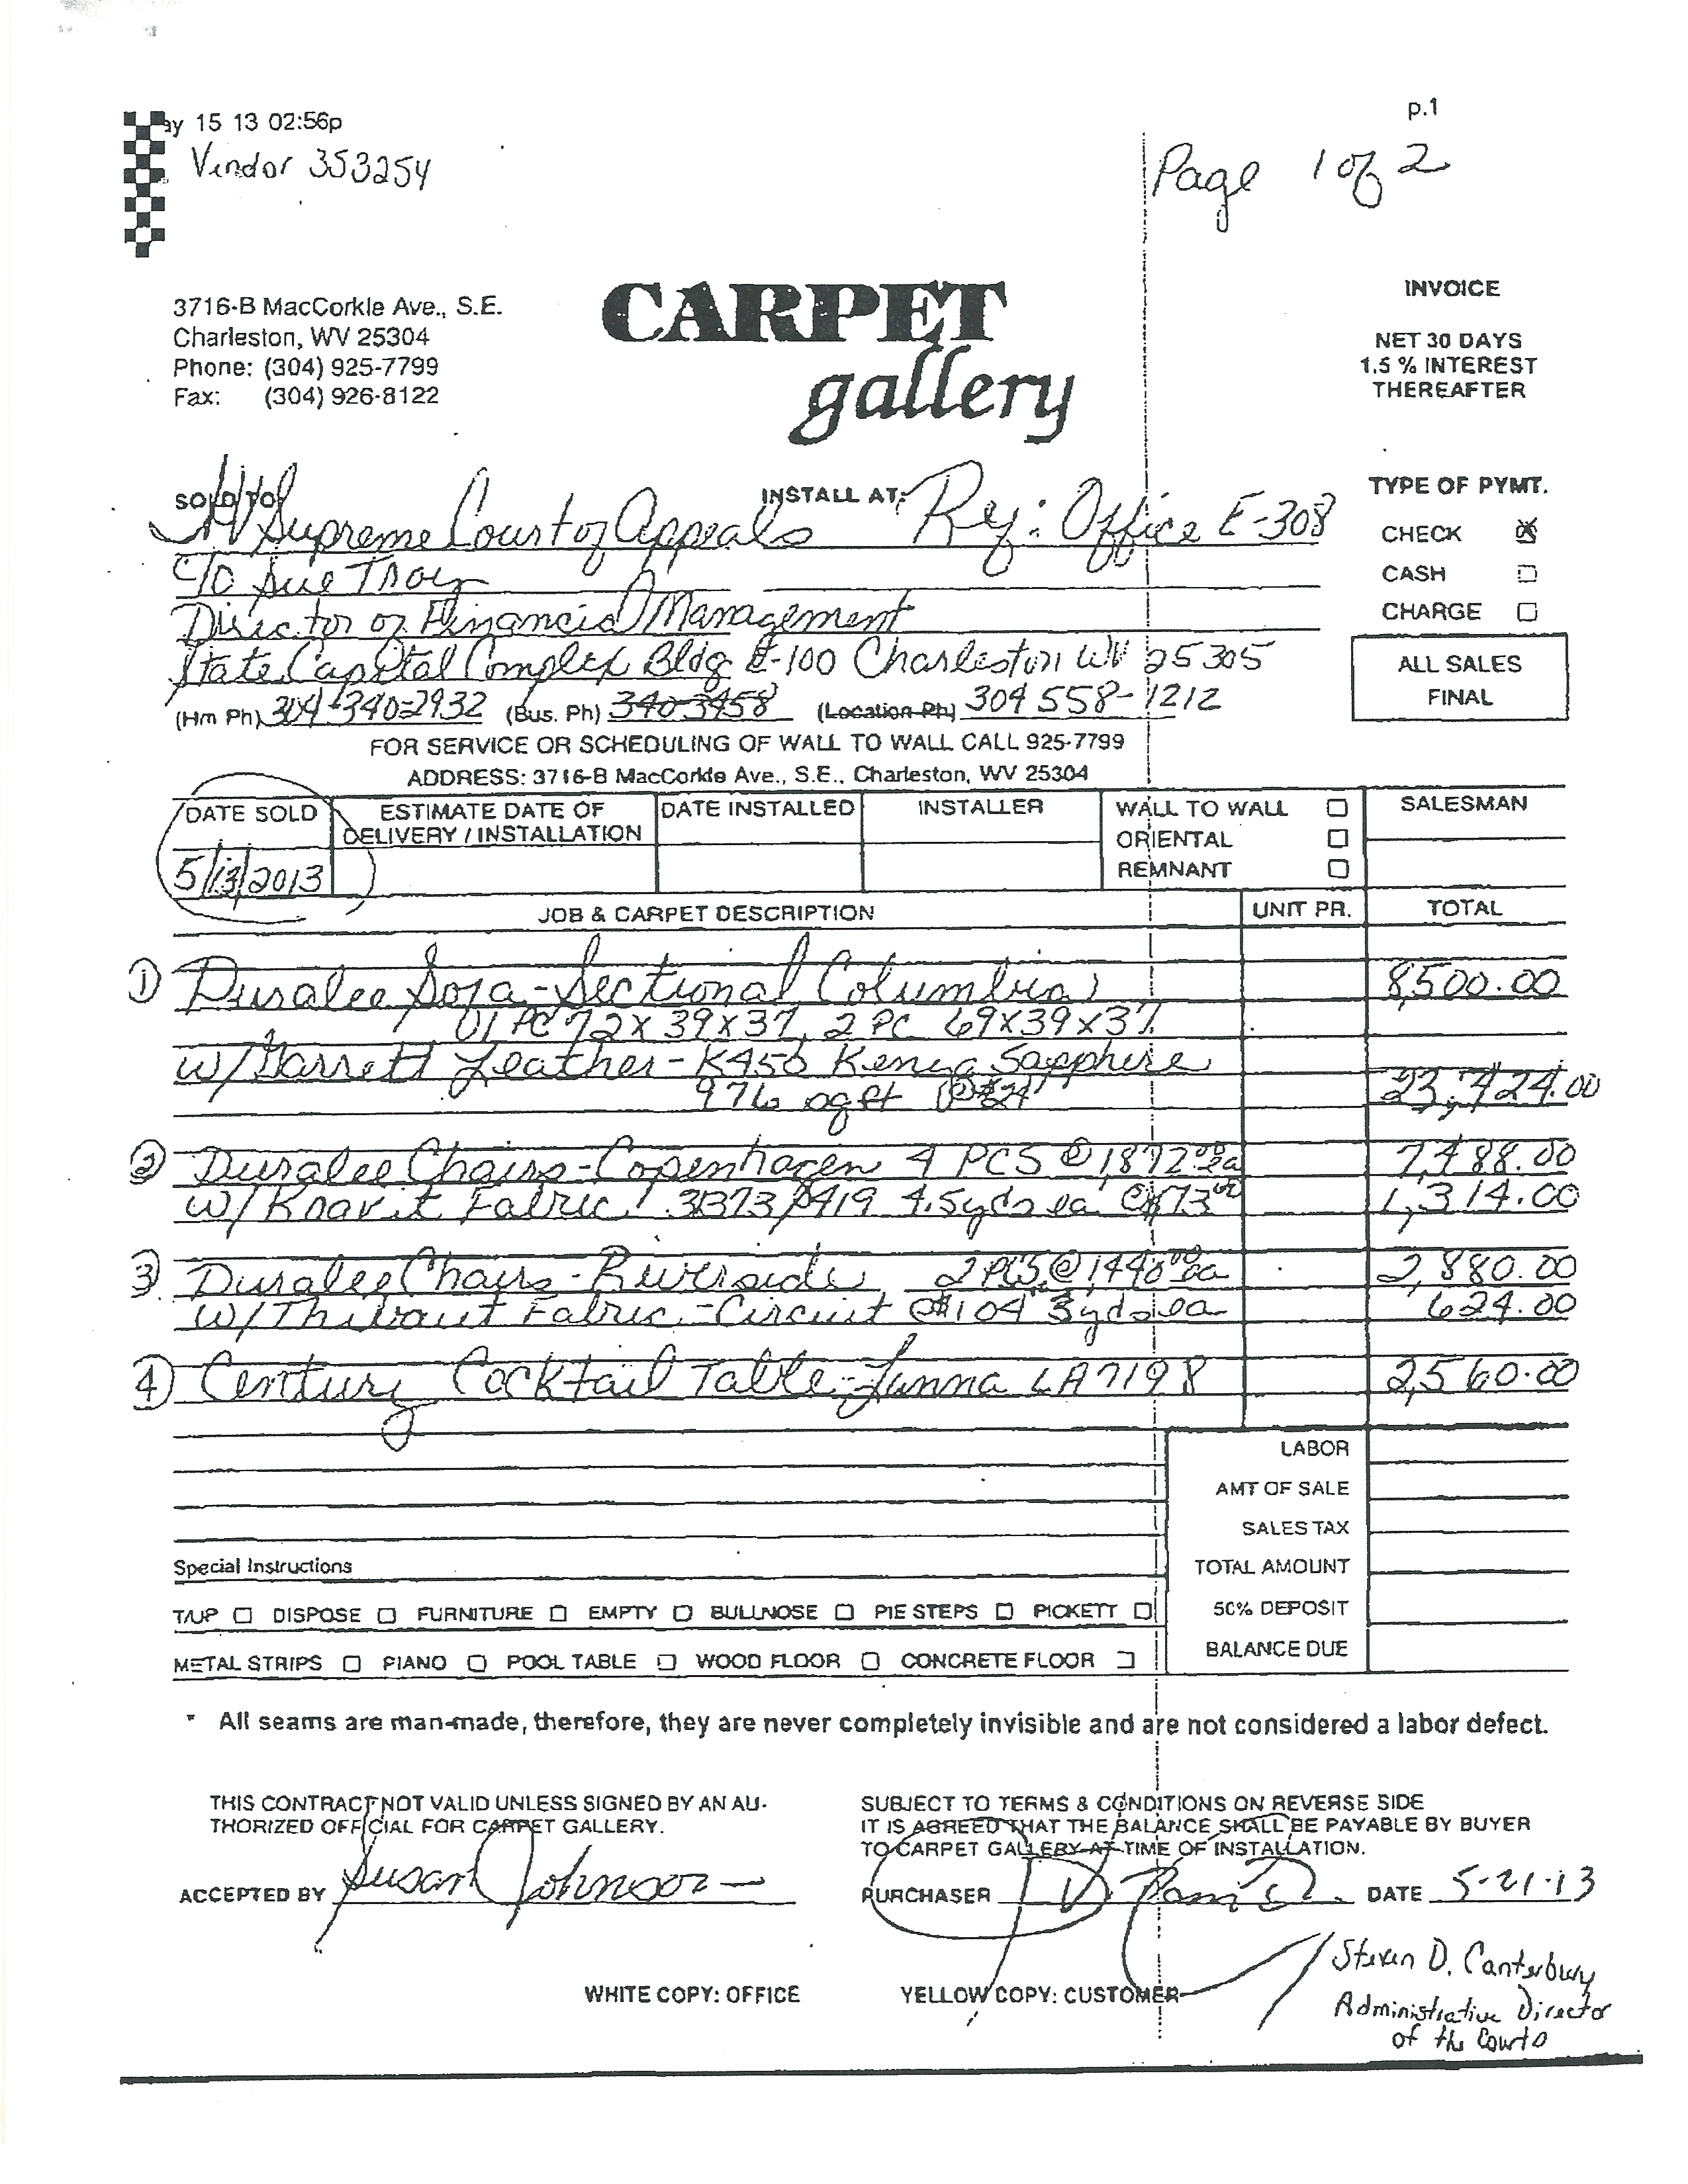 The invoice details the billing from Carpet Gallery for furniture, including the blue sectional sofa, for Chief Justice Allen Loughry's chambers. (WCHS/WVAH)<p></p>